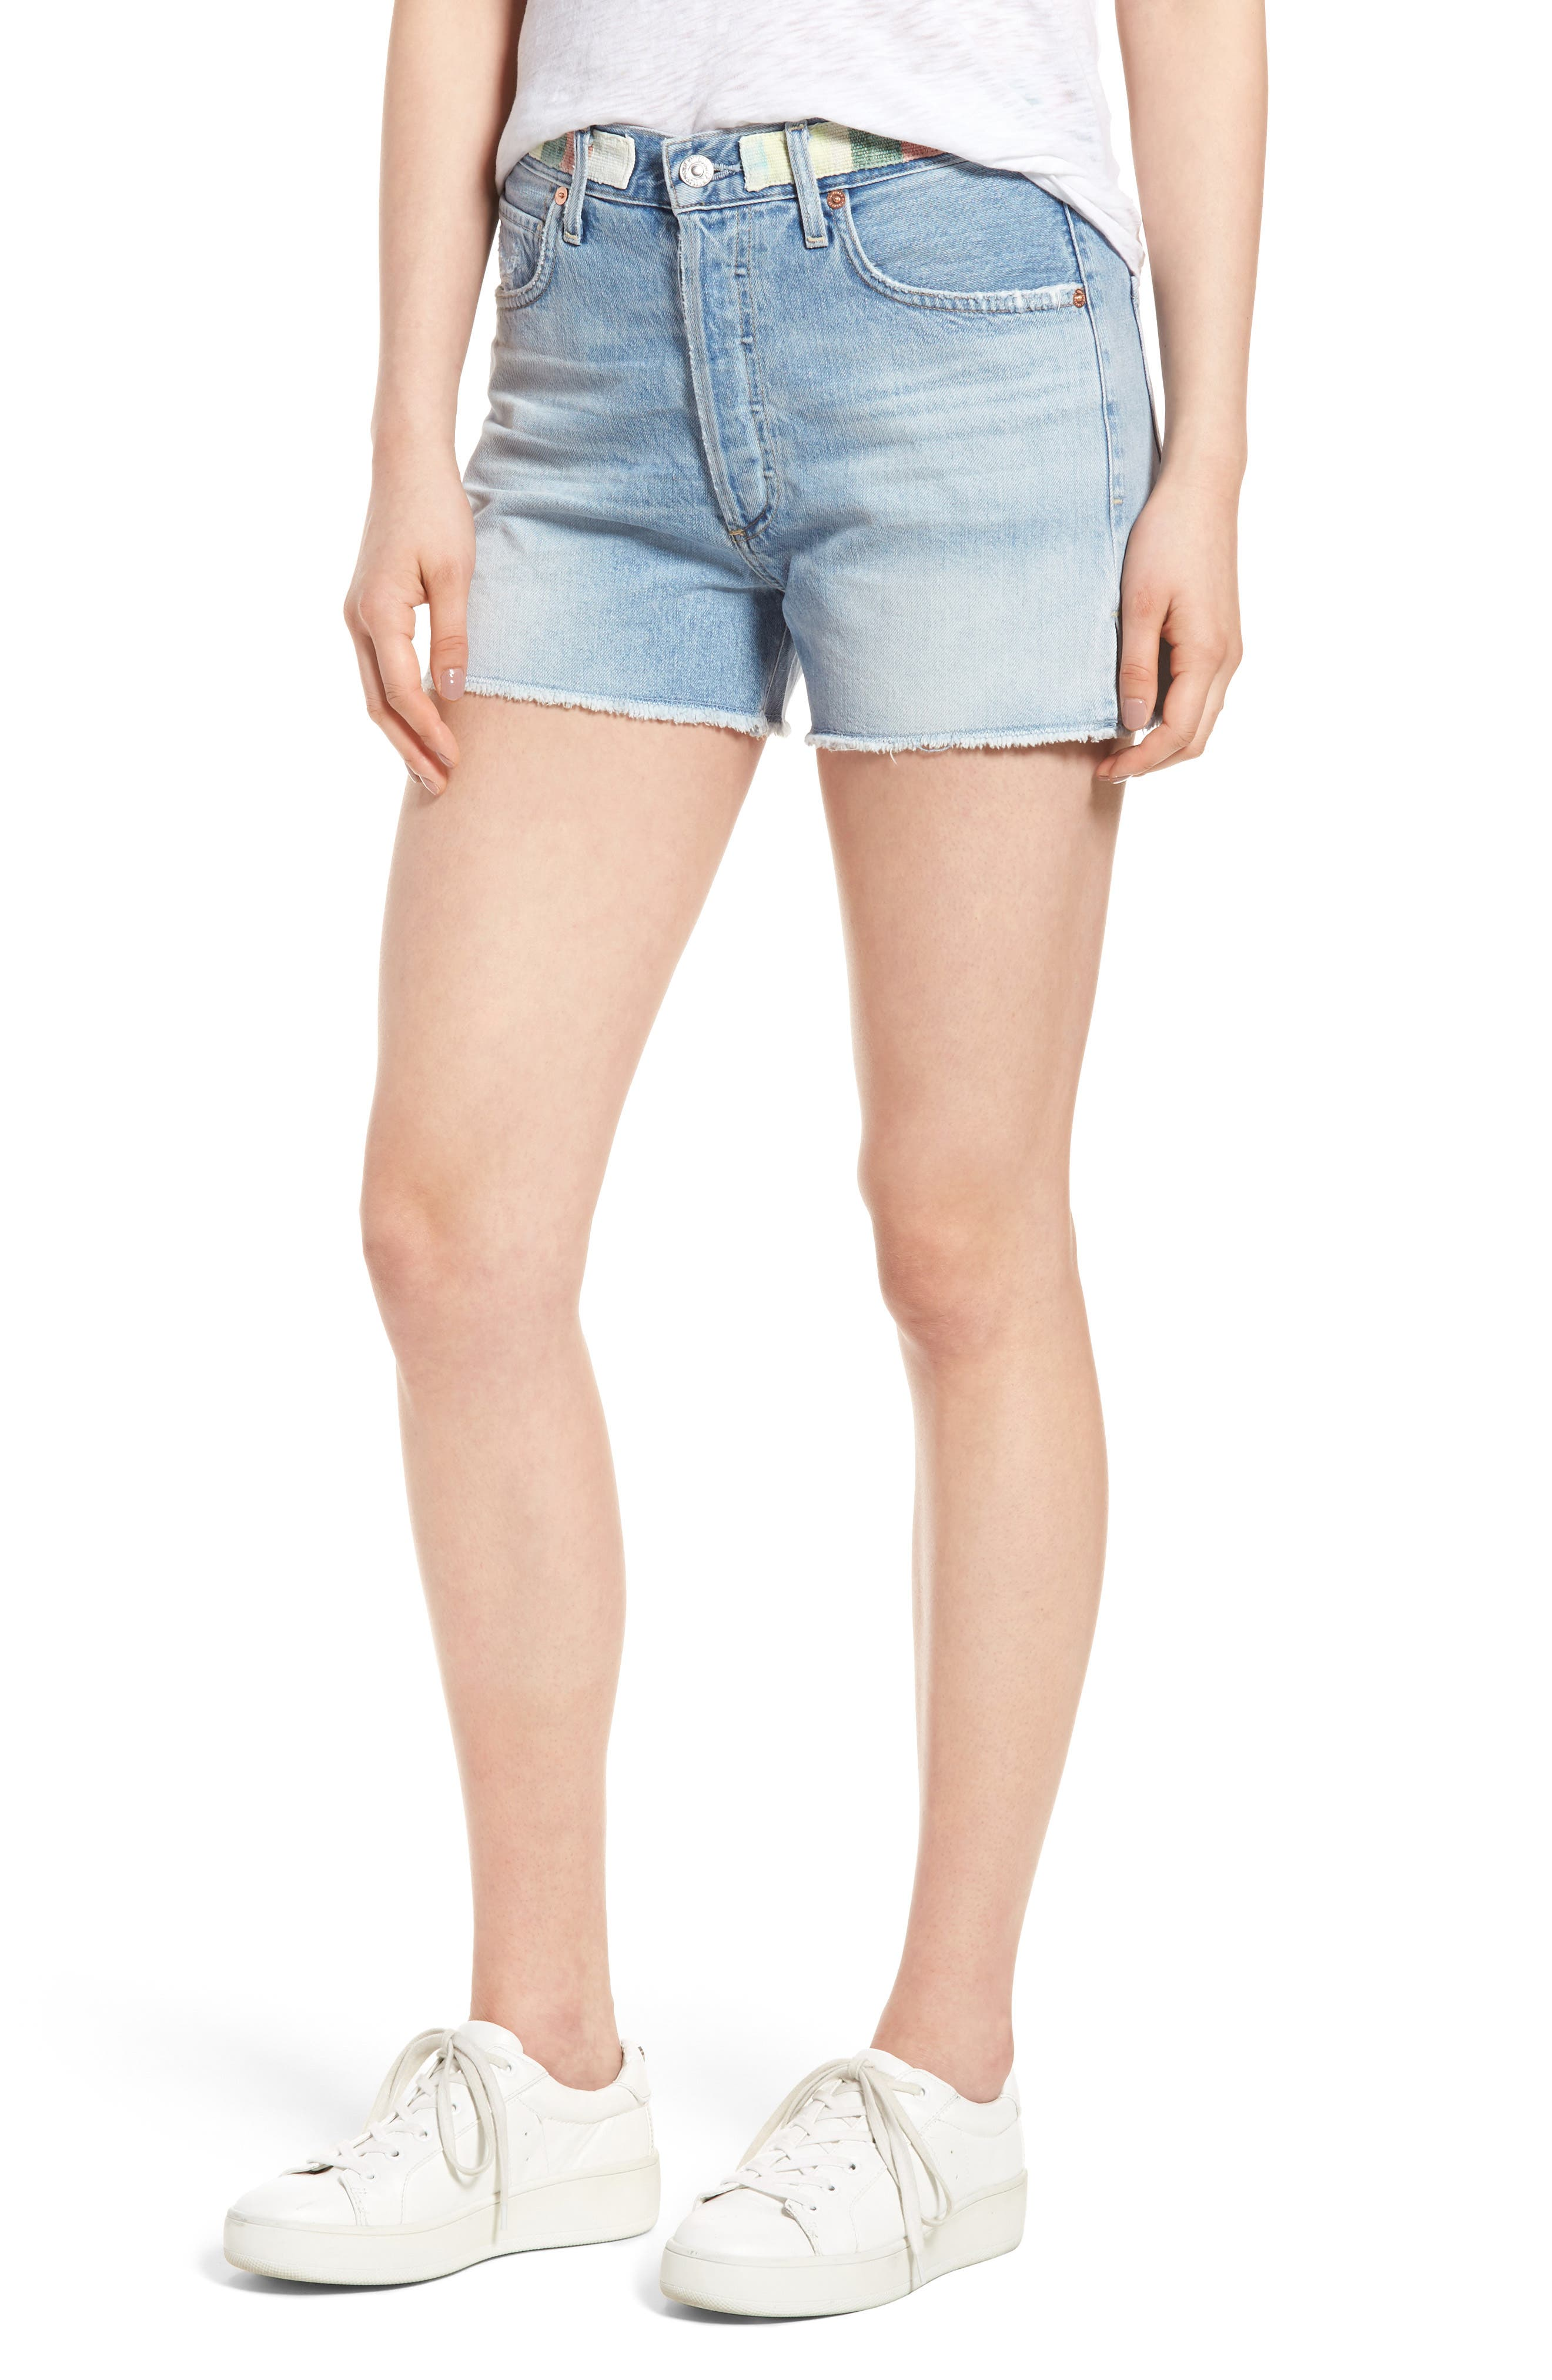 Alyx High Waist Cutoff Denim Shorts,                             Main thumbnail 1, color,                             400